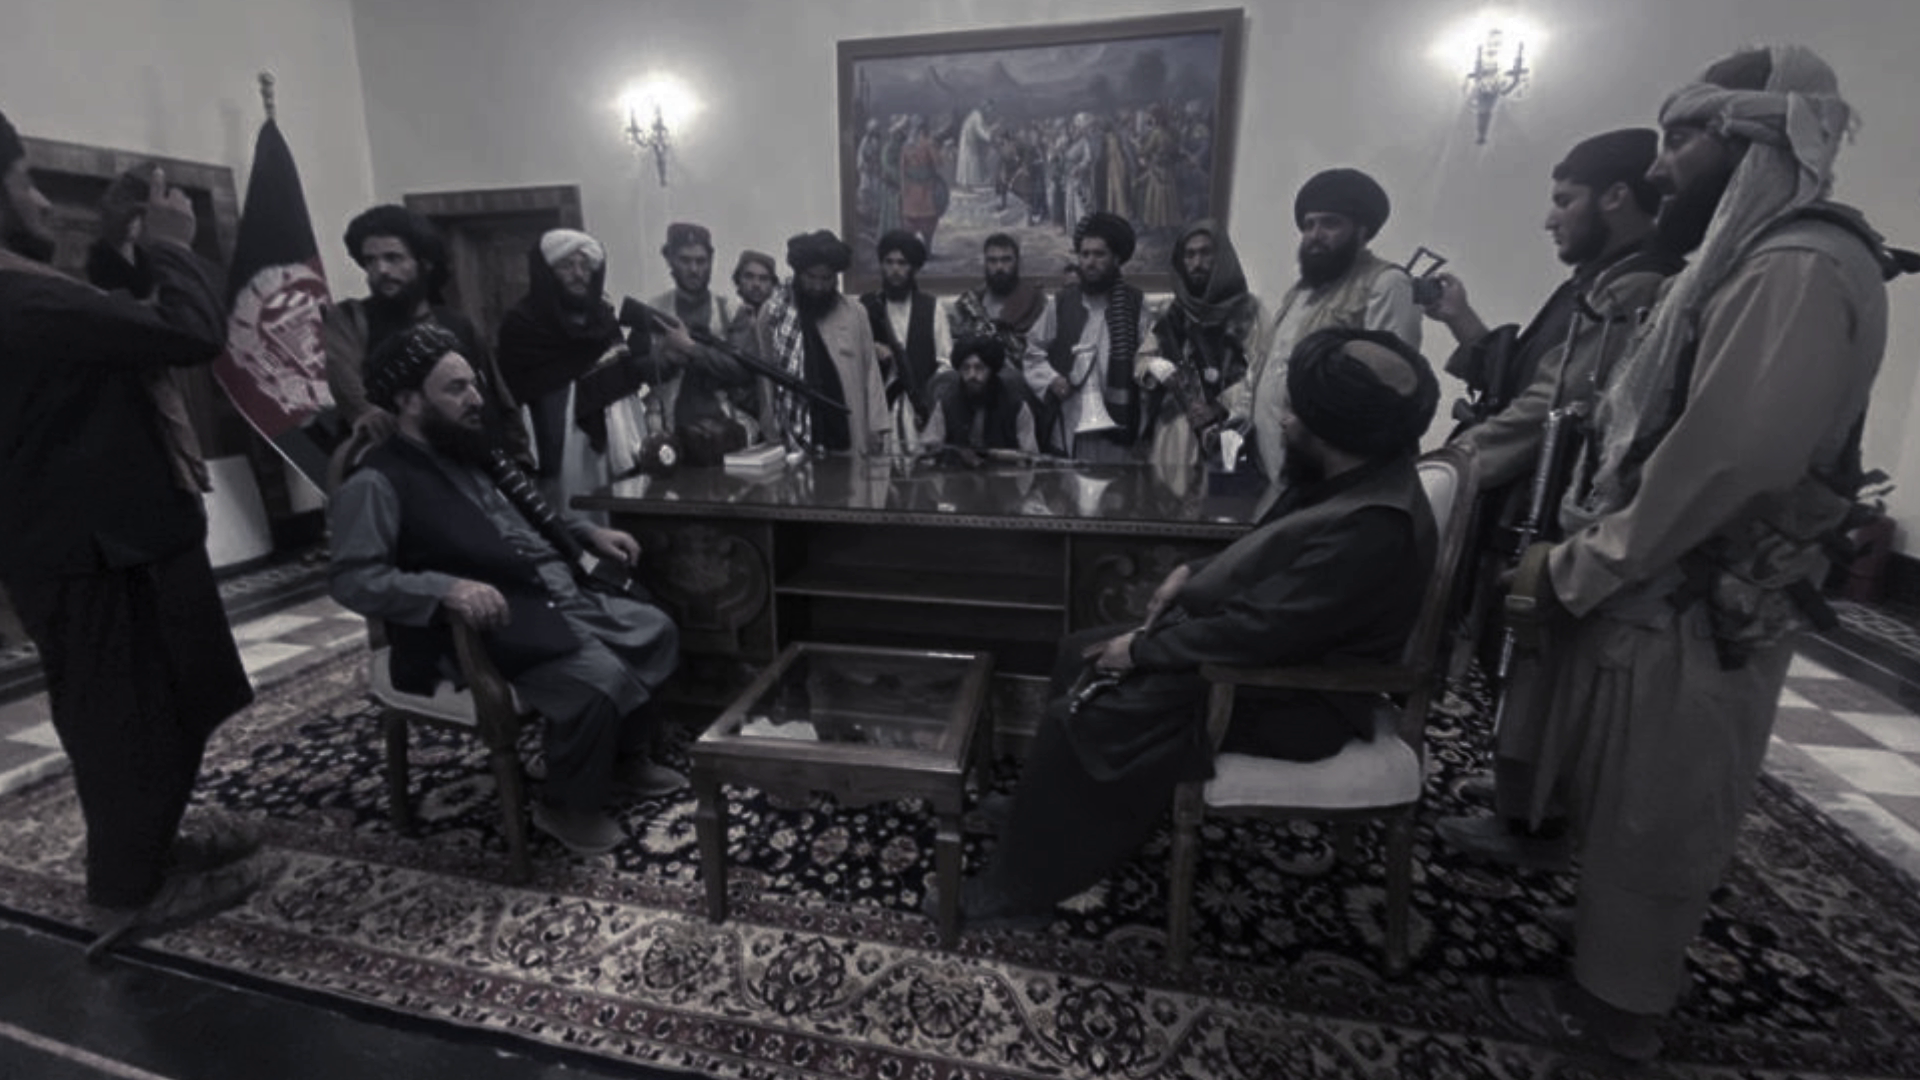 Taliban seize power in Afghanistan as President flees country